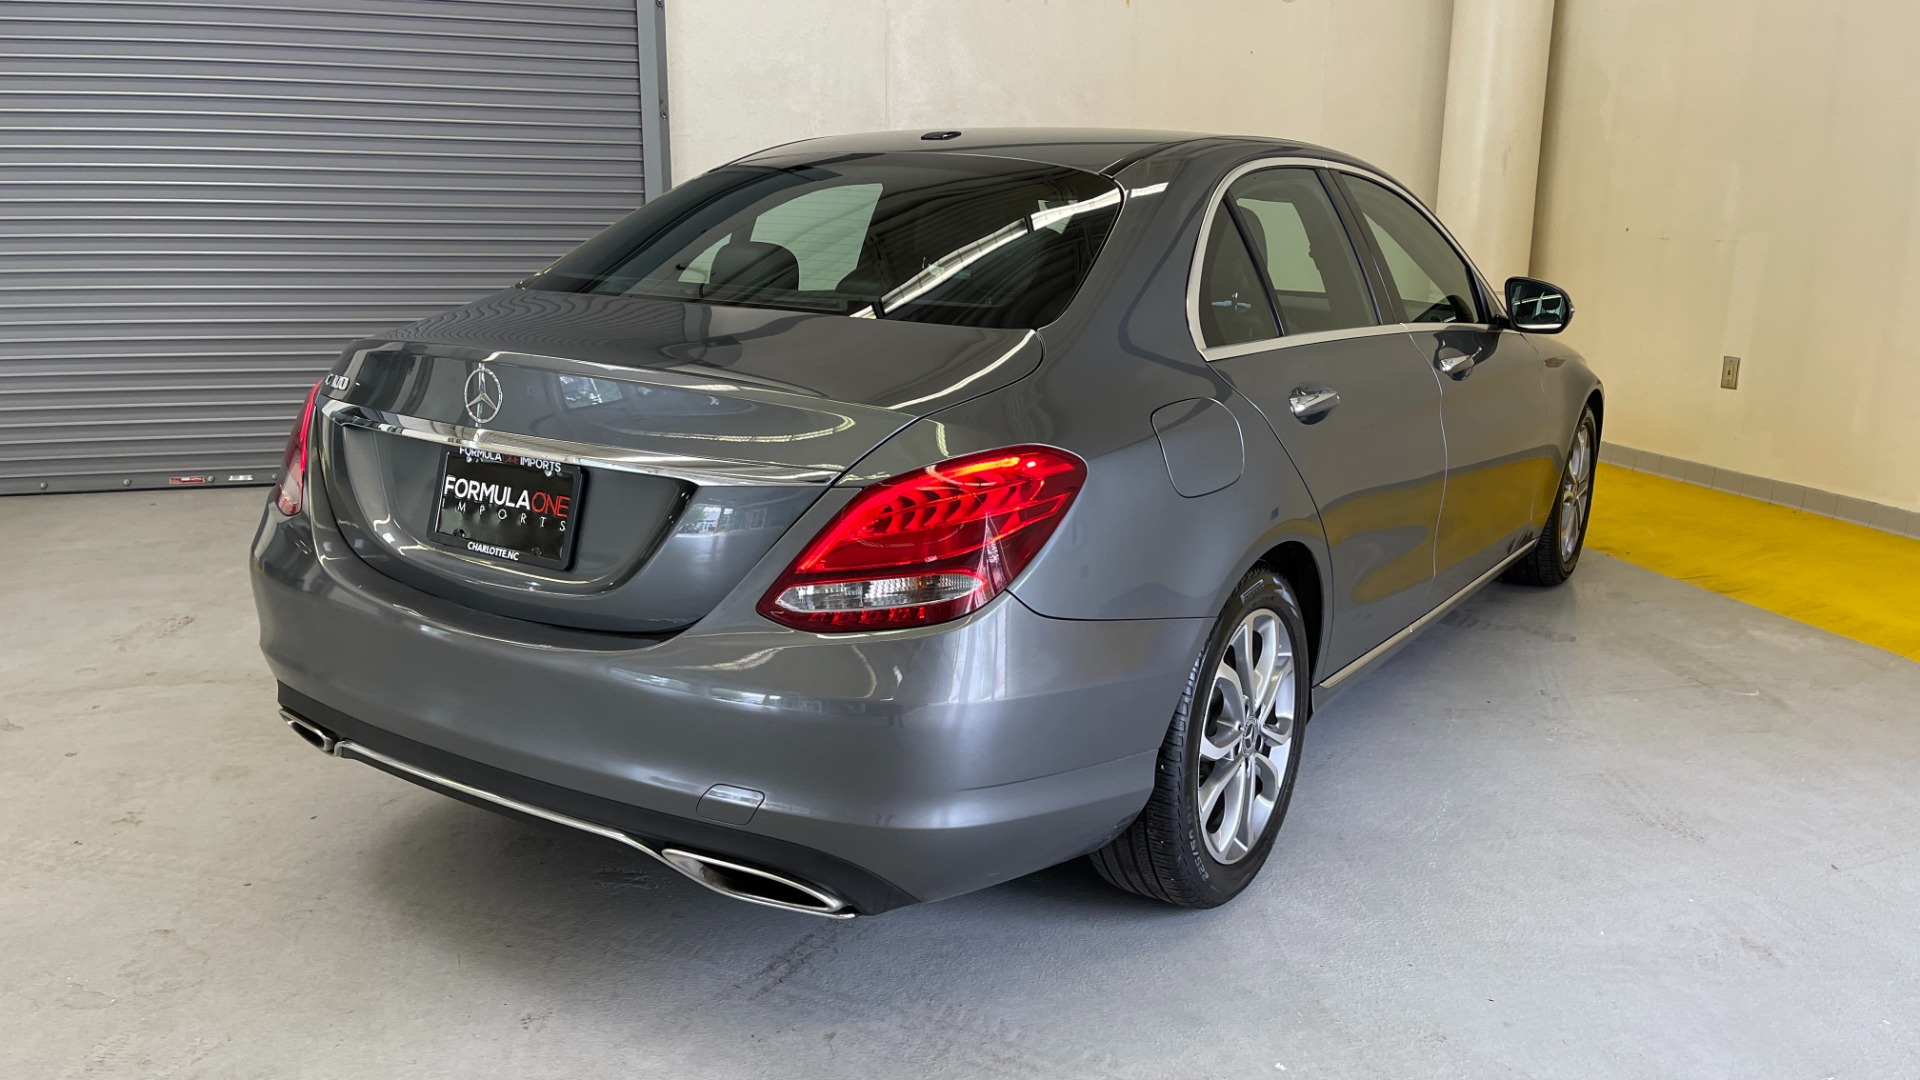 Used 2018 Mercedes-Benz C-CLASS C 300 PREMIUM / SUNROOF / APPLE CARPLAY / HTD STS / REARVIEW for sale $31,795 at Formula Imports in Charlotte NC 28227 2